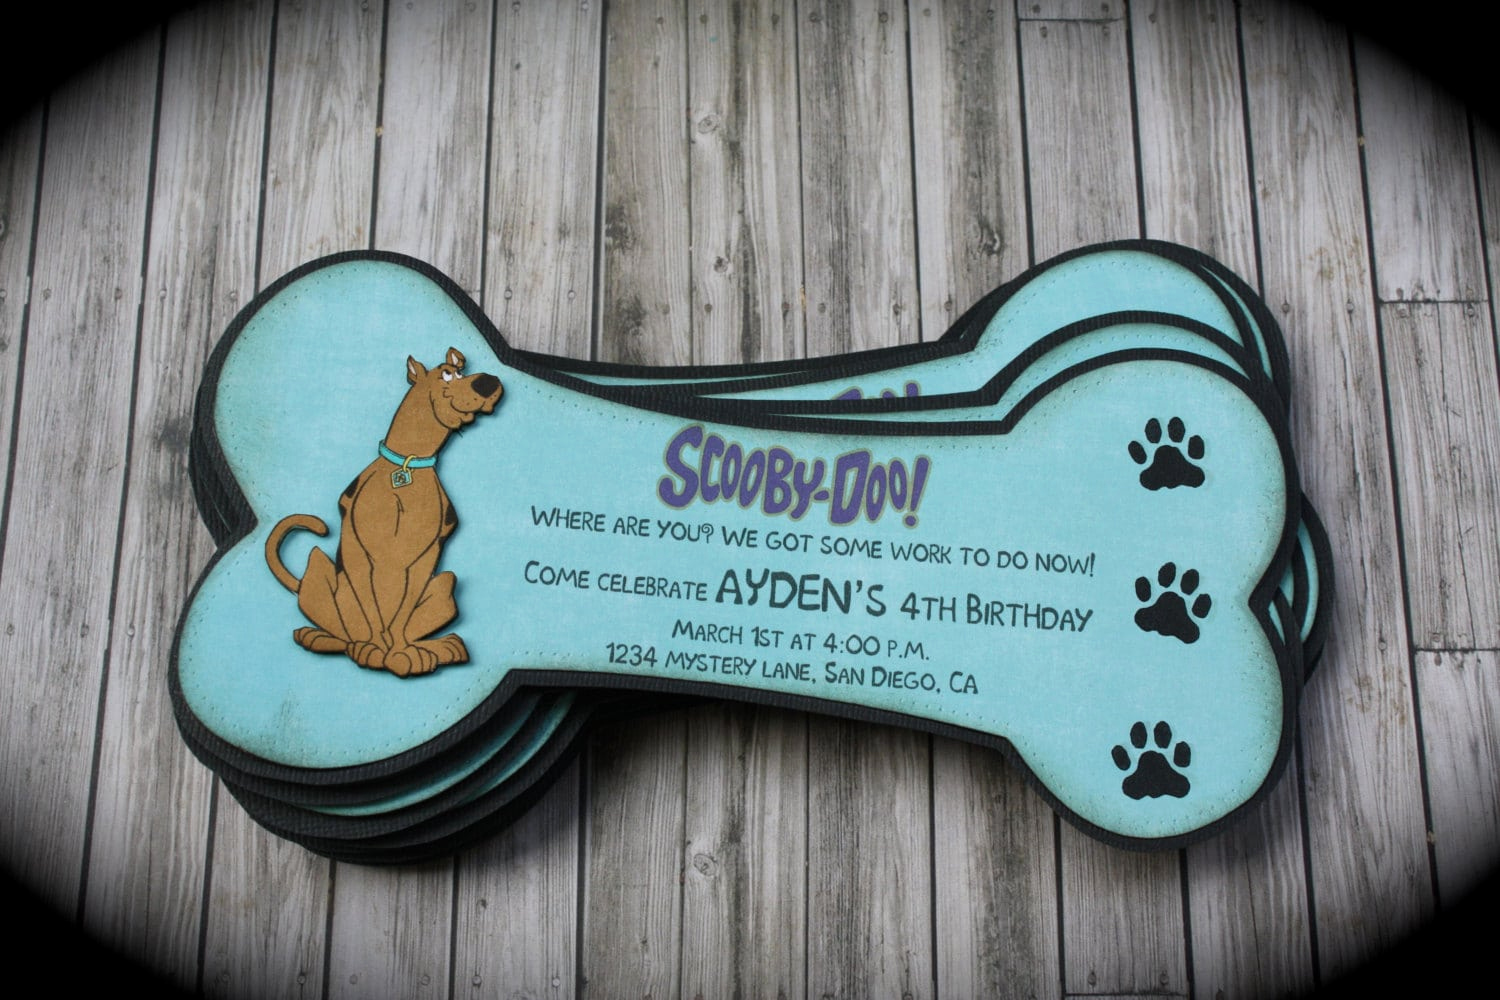 Scooby Doo Invitation Template Elegant Scooby Doo Invitation Template